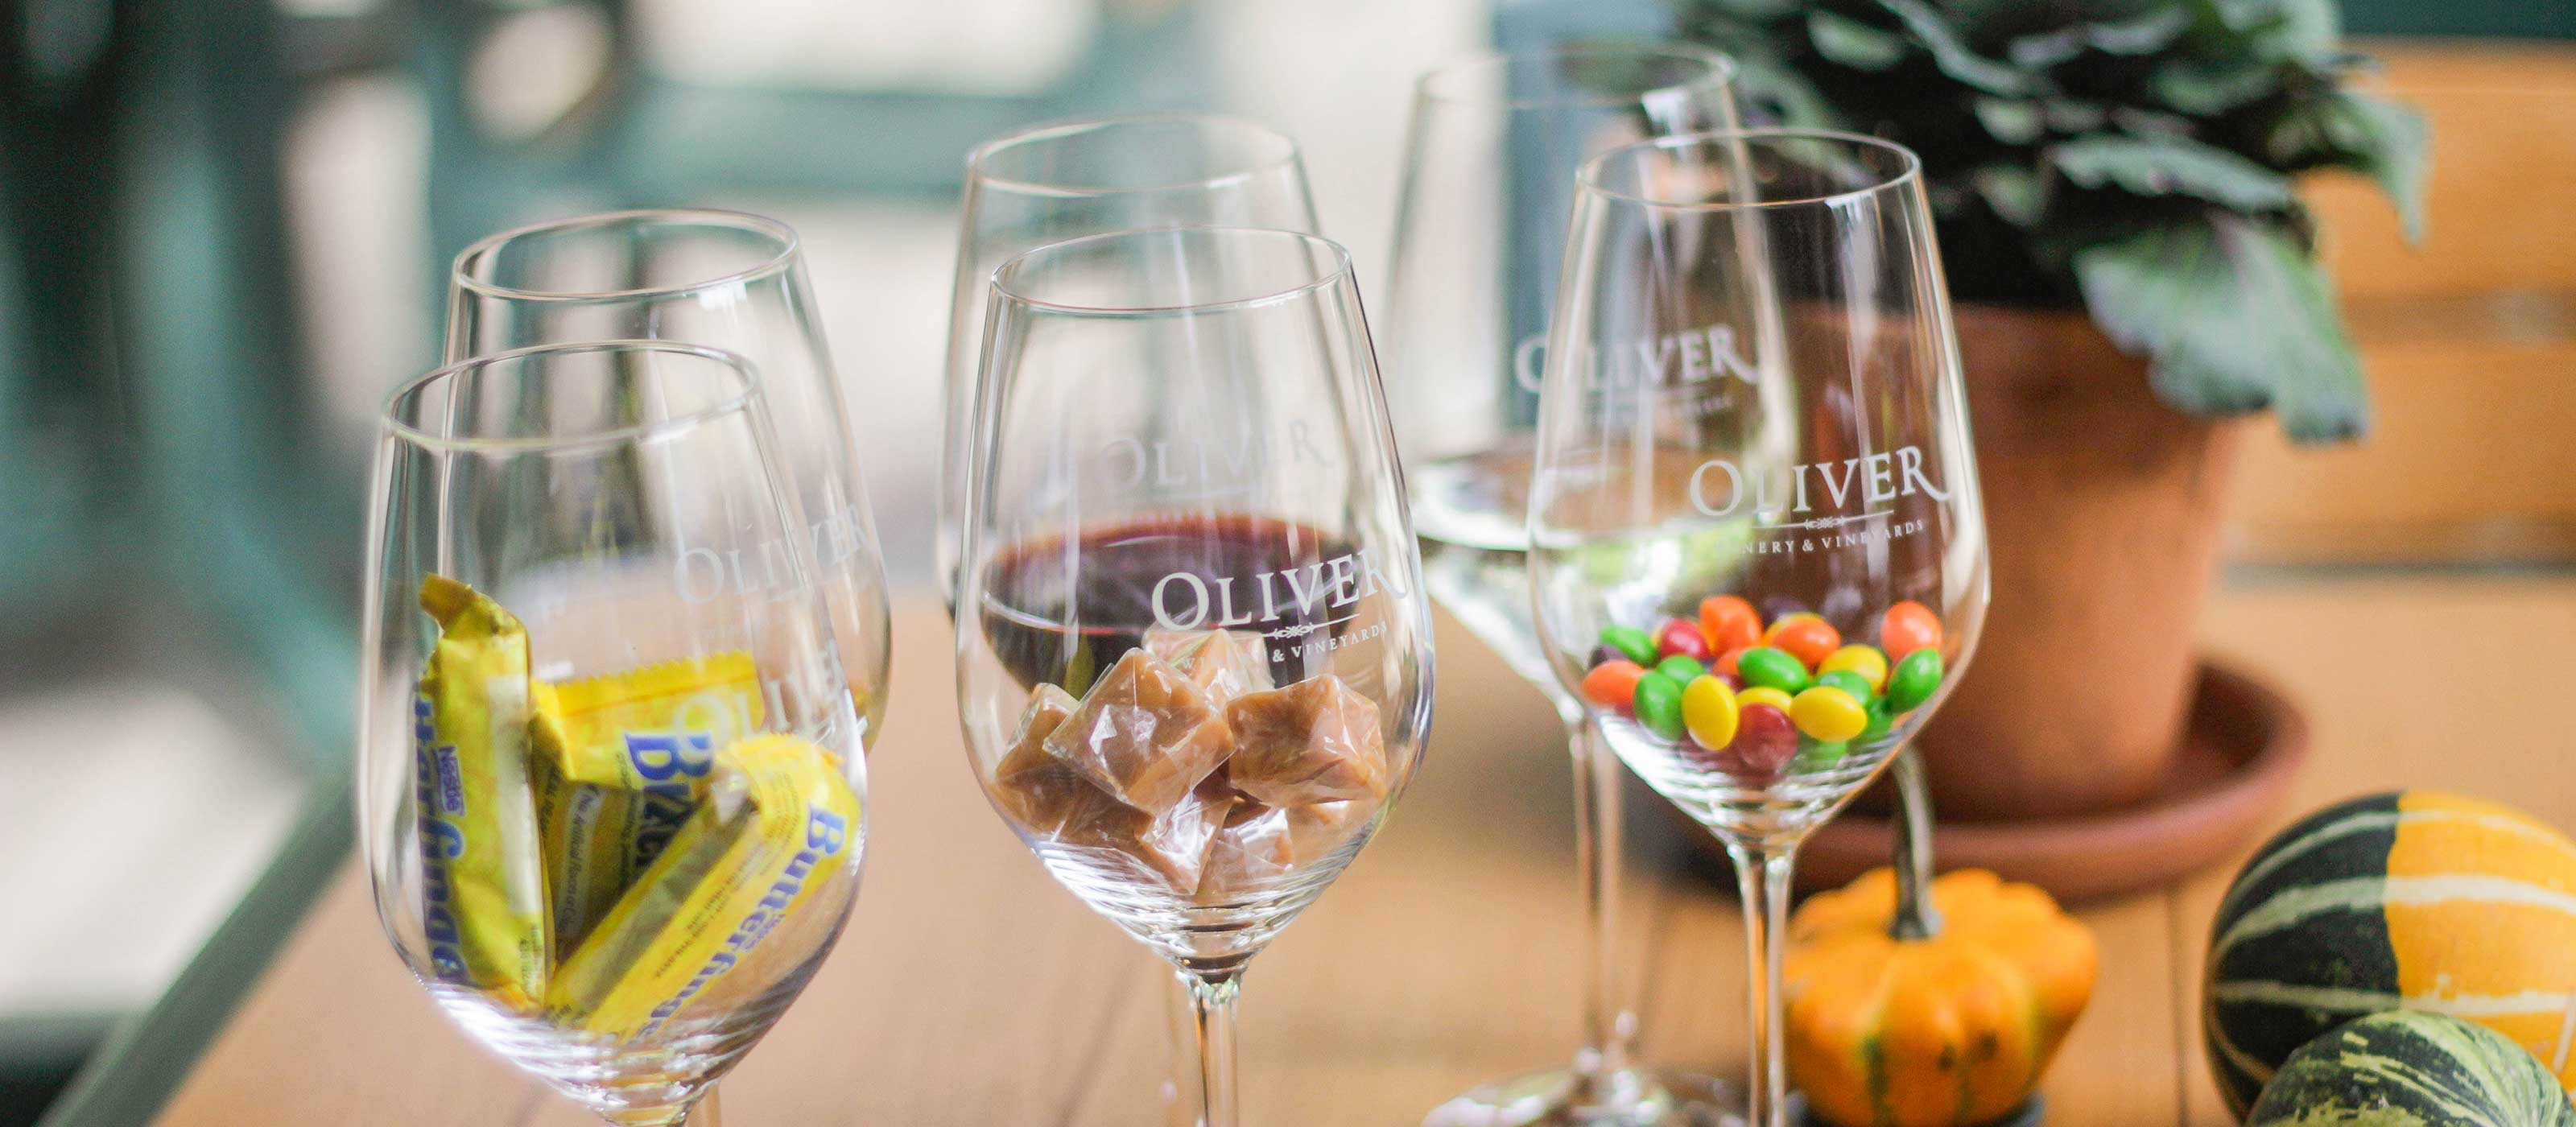 Classic Halloween candies paired with your favorite Oliver Wines